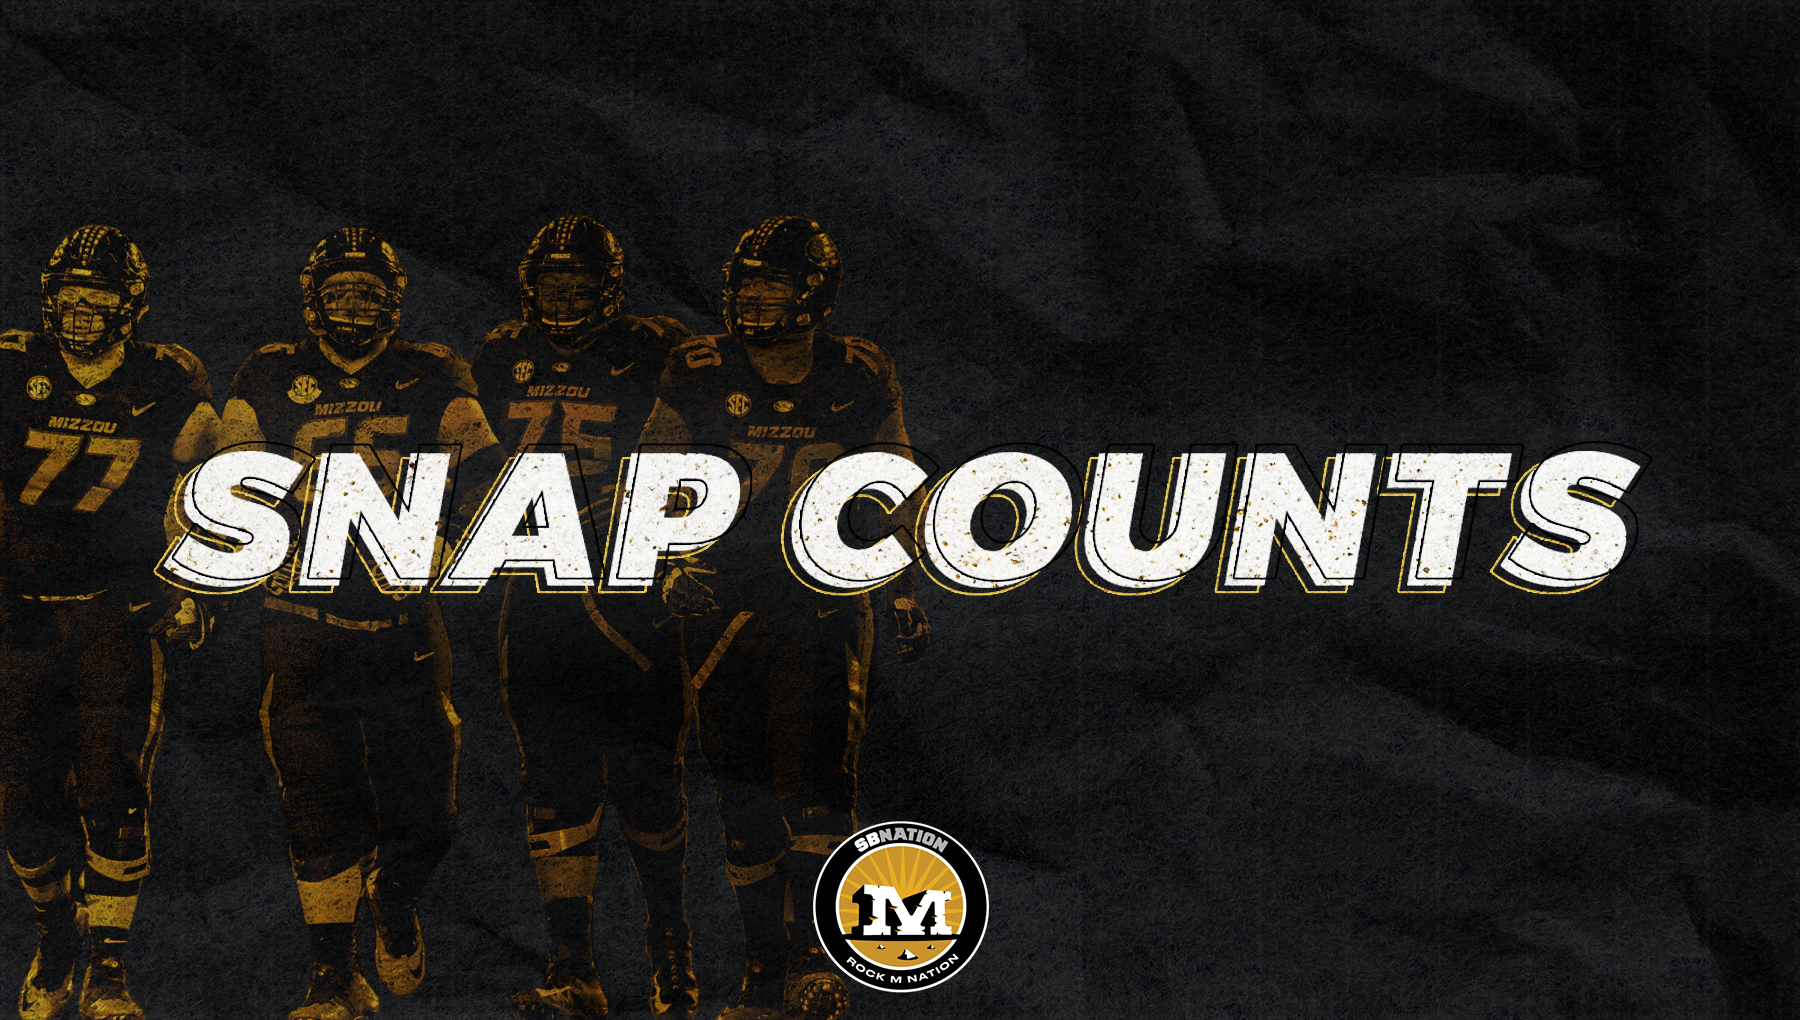 Snap Counts